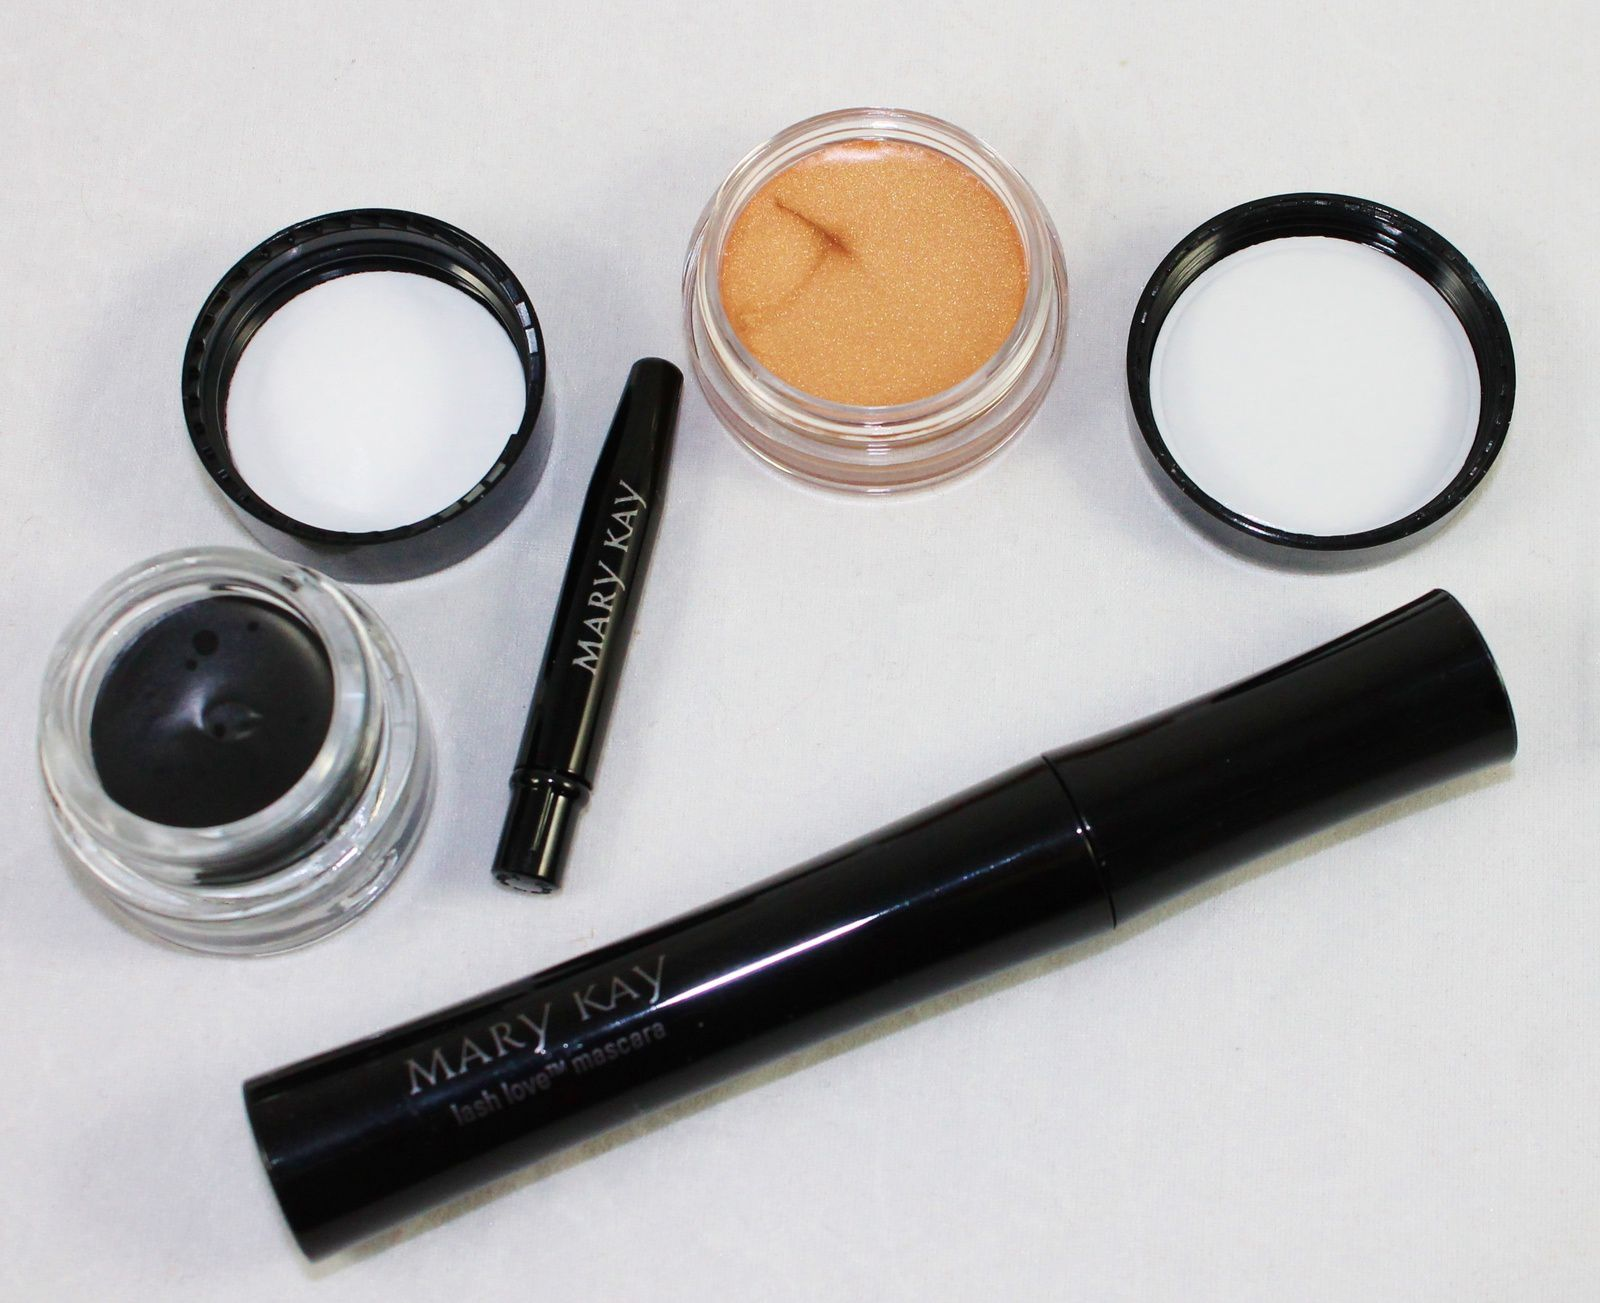 Mary Kay Cream Eye Color in Apricot Twist ($14), Mary Kay Gel Eyeliner with expandable Brush Applicatoir in Jet Black ($18), Mary Kay Lash Love Mascara in Black ($15)